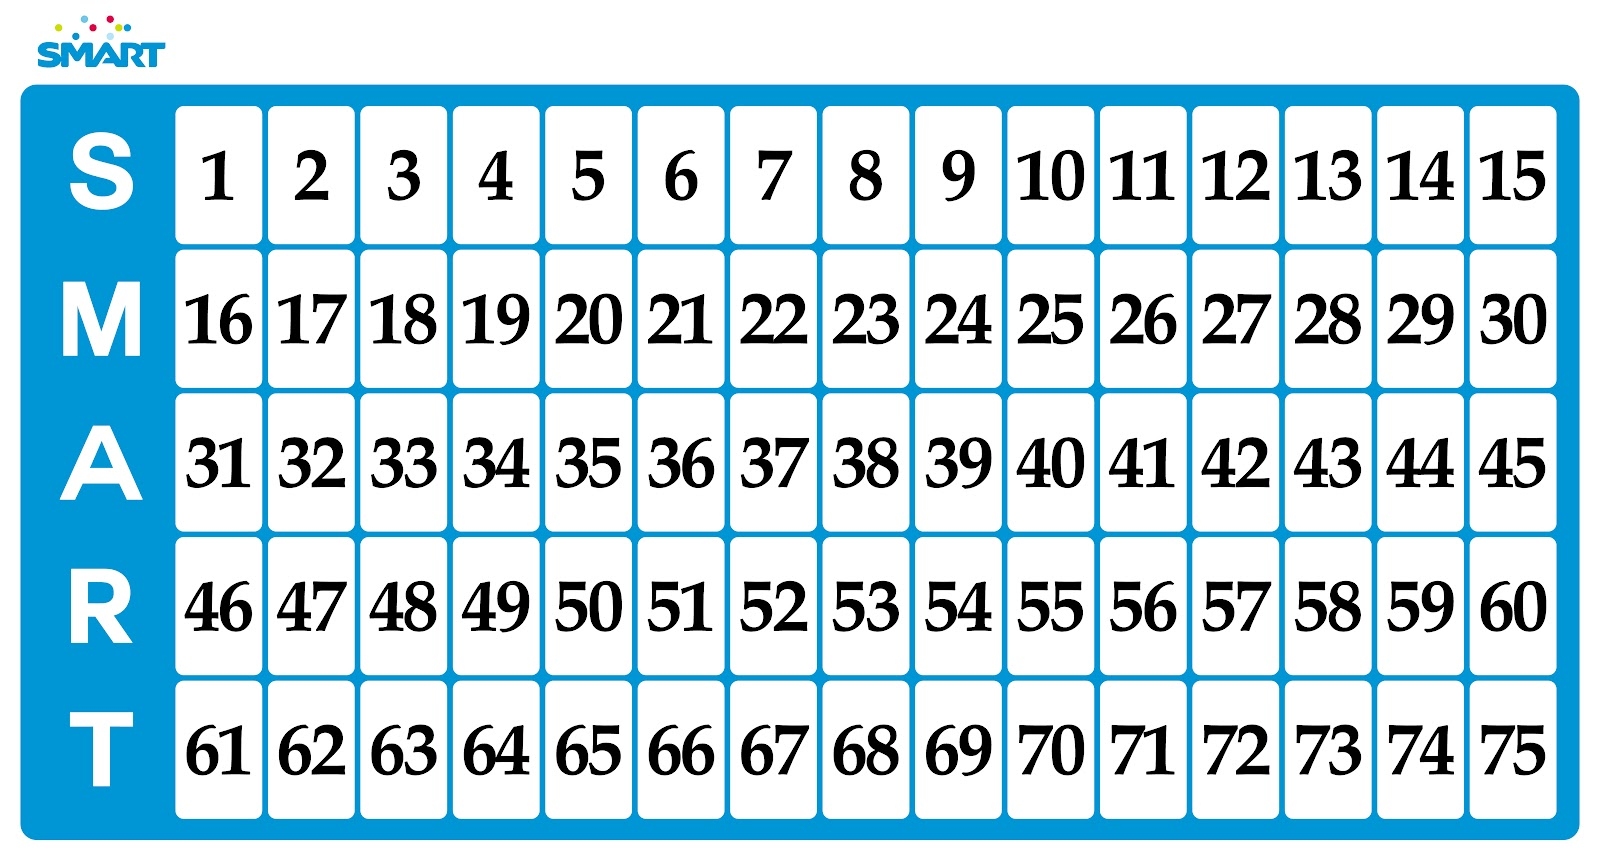 Simplicity image in printable bingo numbers 1-75